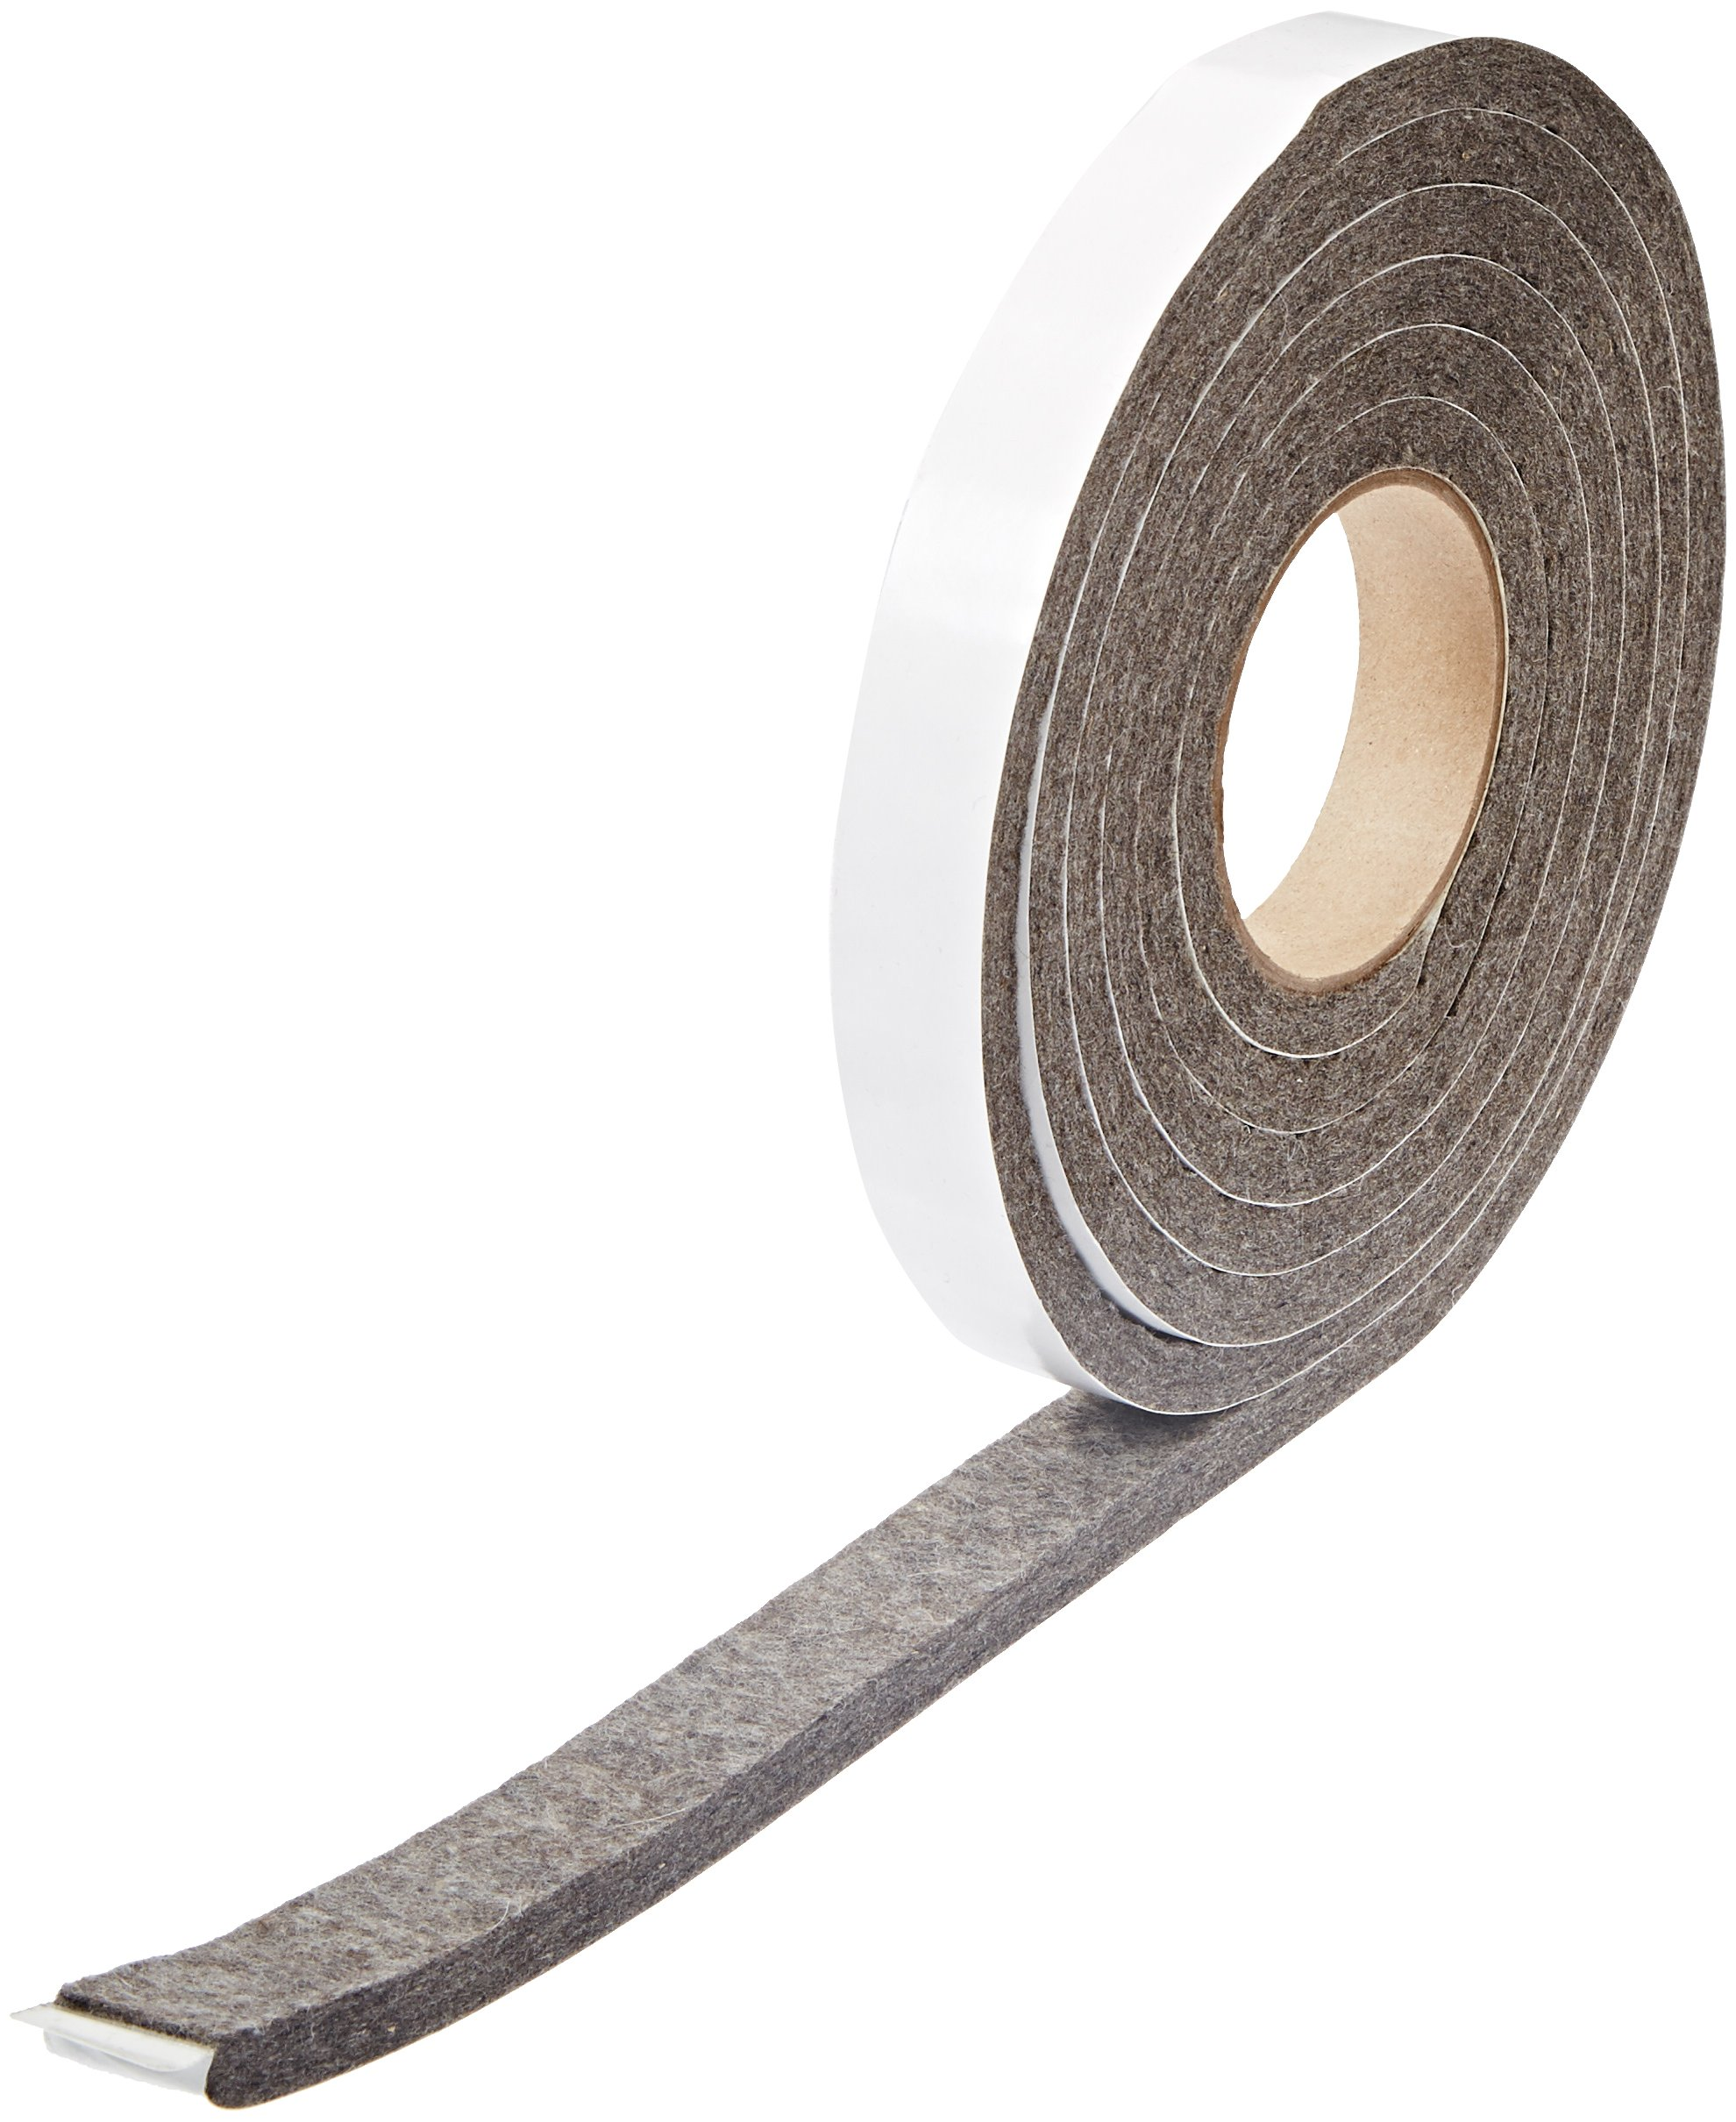 Grade F7 Pressed Wool Felt Strip, Gray, Meets SAE J314, Adhesive Backed, 3/8'' Thickness, 1'' Width, 10' Length